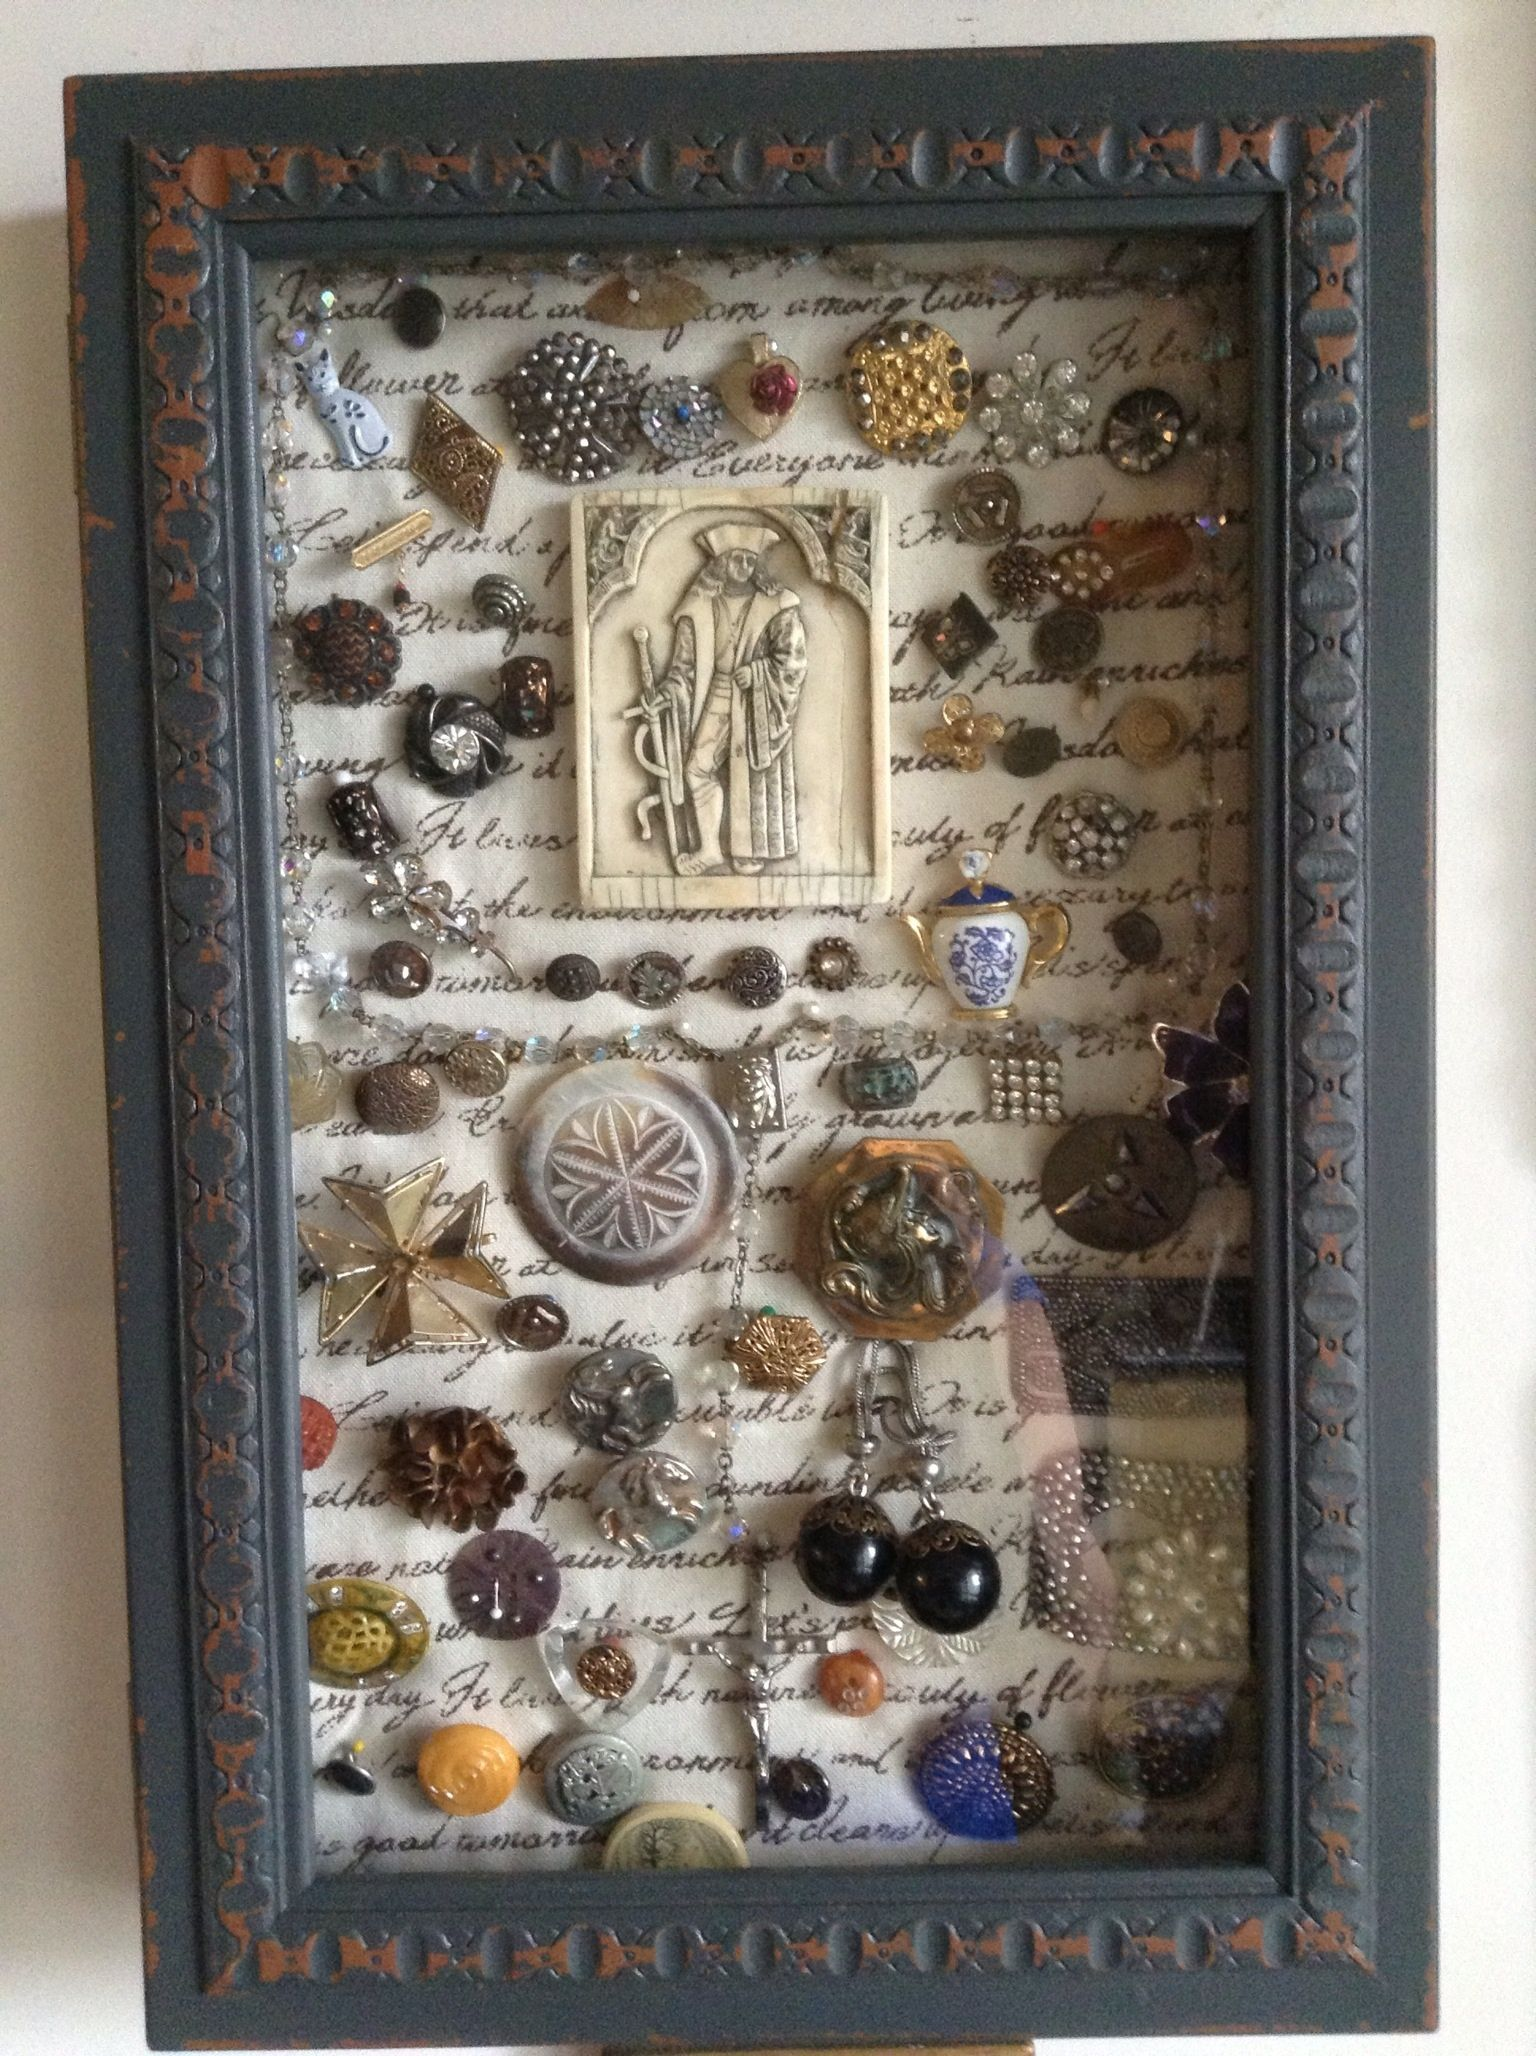 I Collect Antique Buttons And Pins Bought A Shadow Box